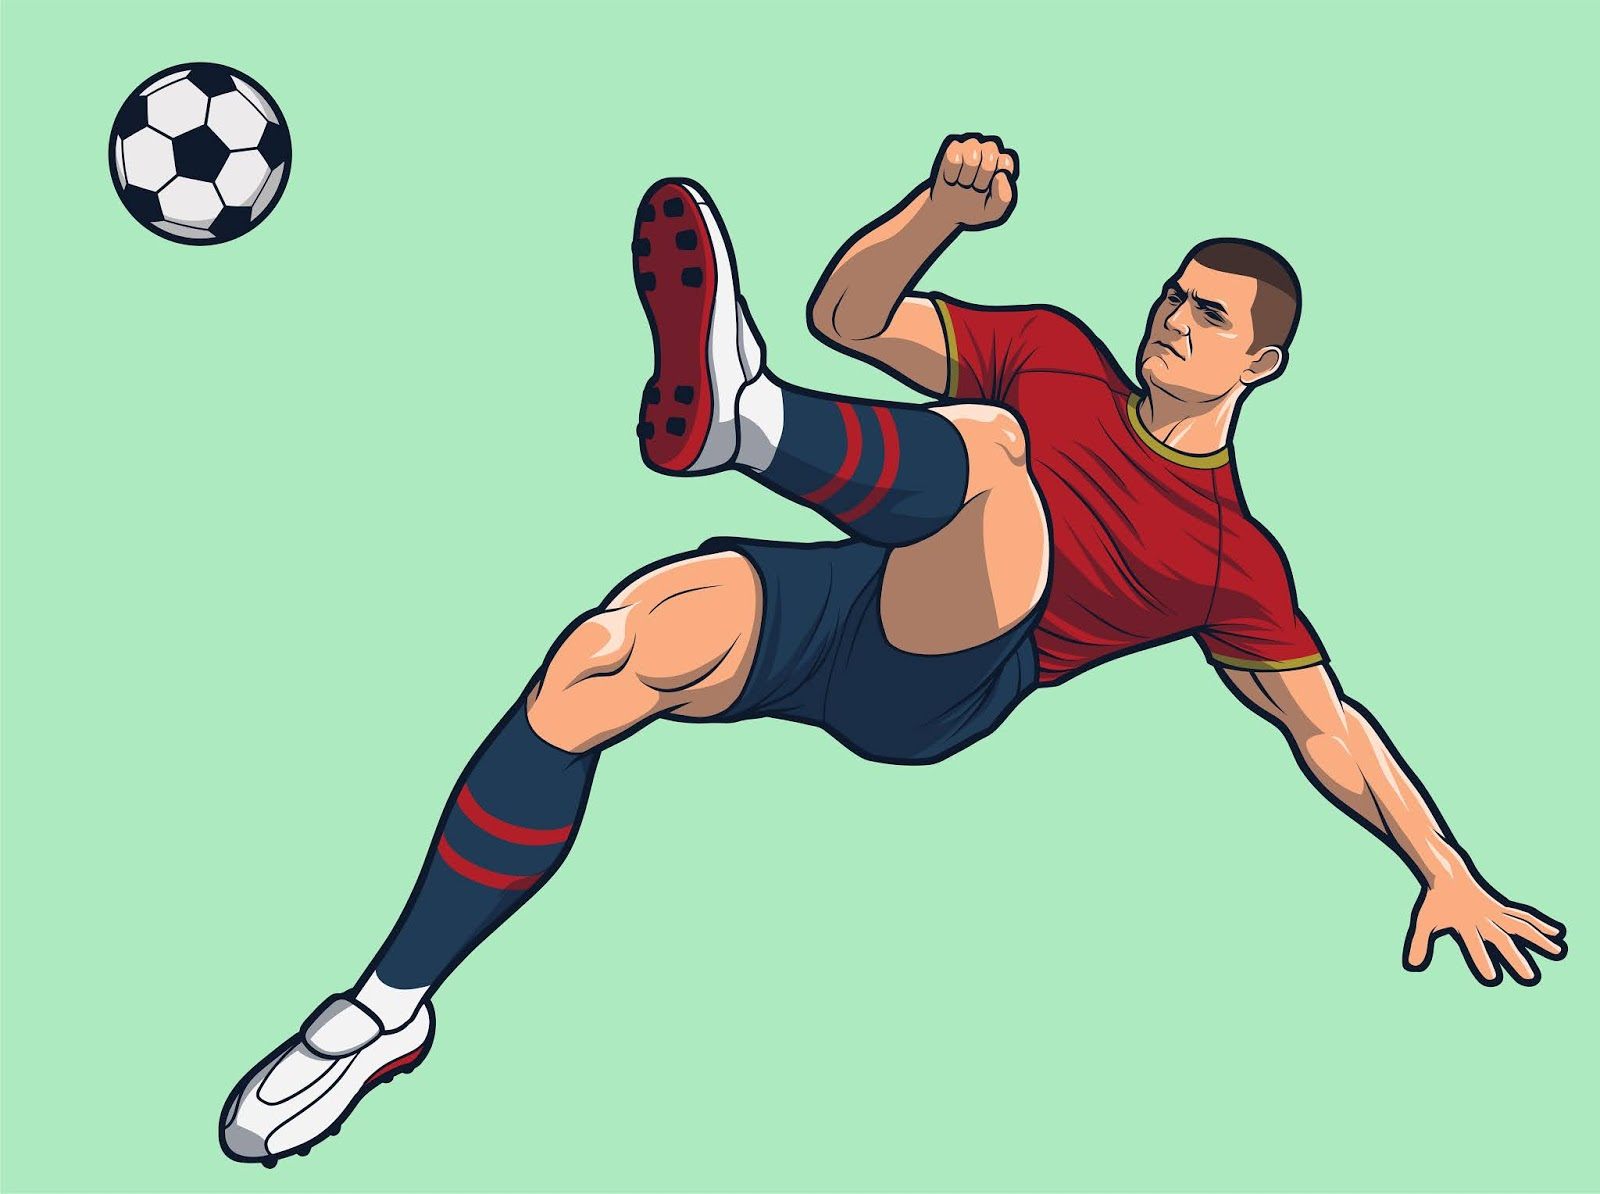 Soccer Player Somersault Overhead Kick Free Download Vector CDR, AI, EPS and PNG Formats